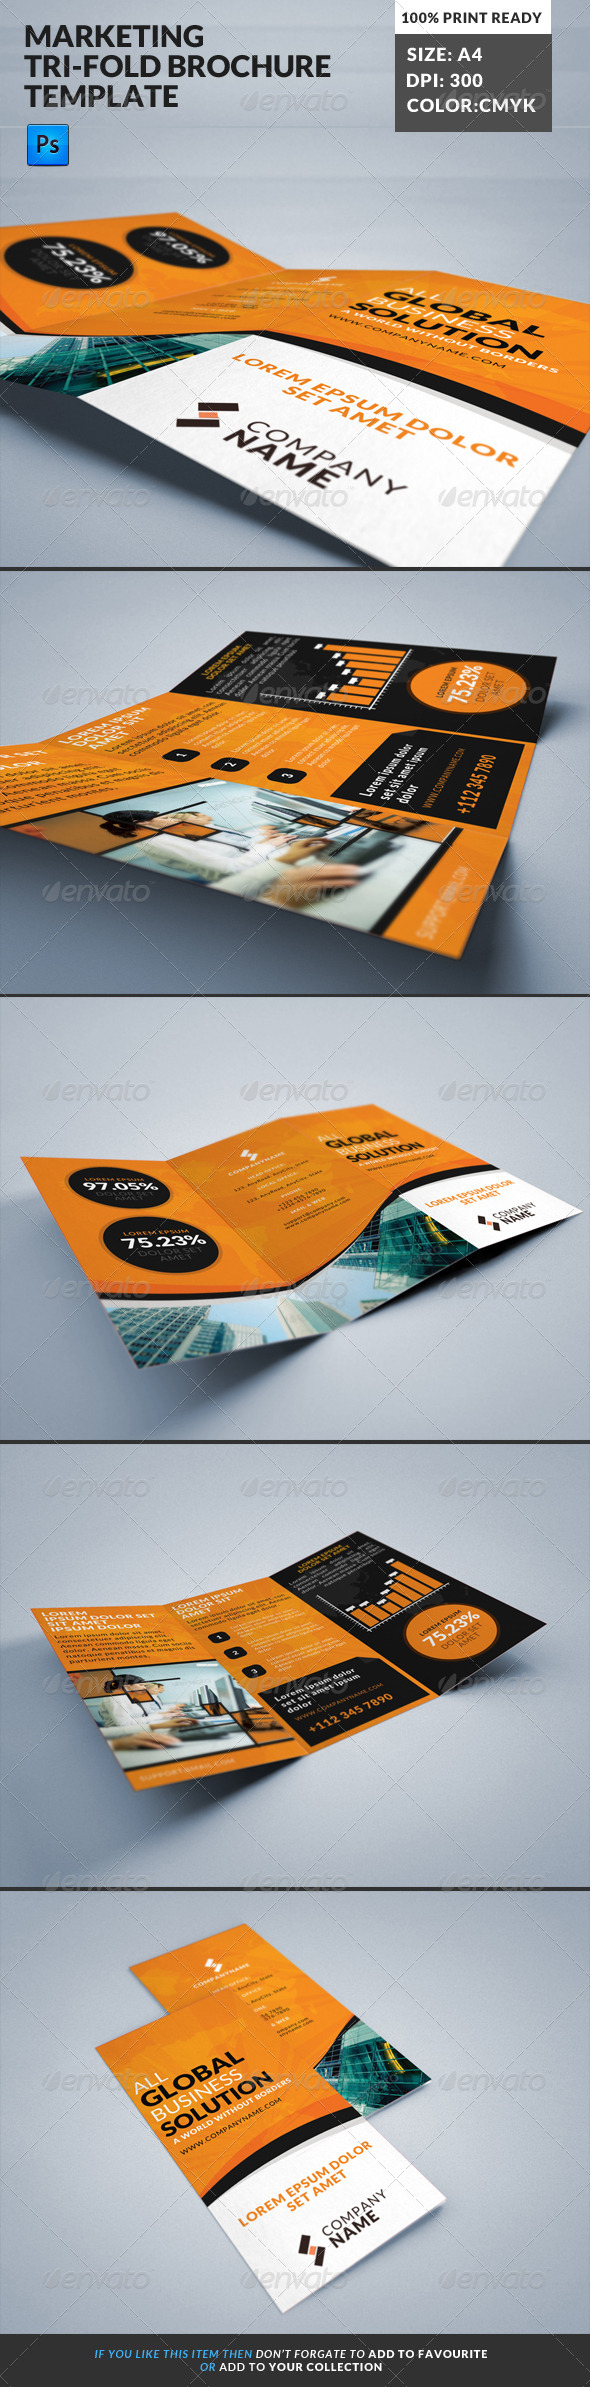 GraphicRiver Marketing Tri-Fold Brochure 2 8099800